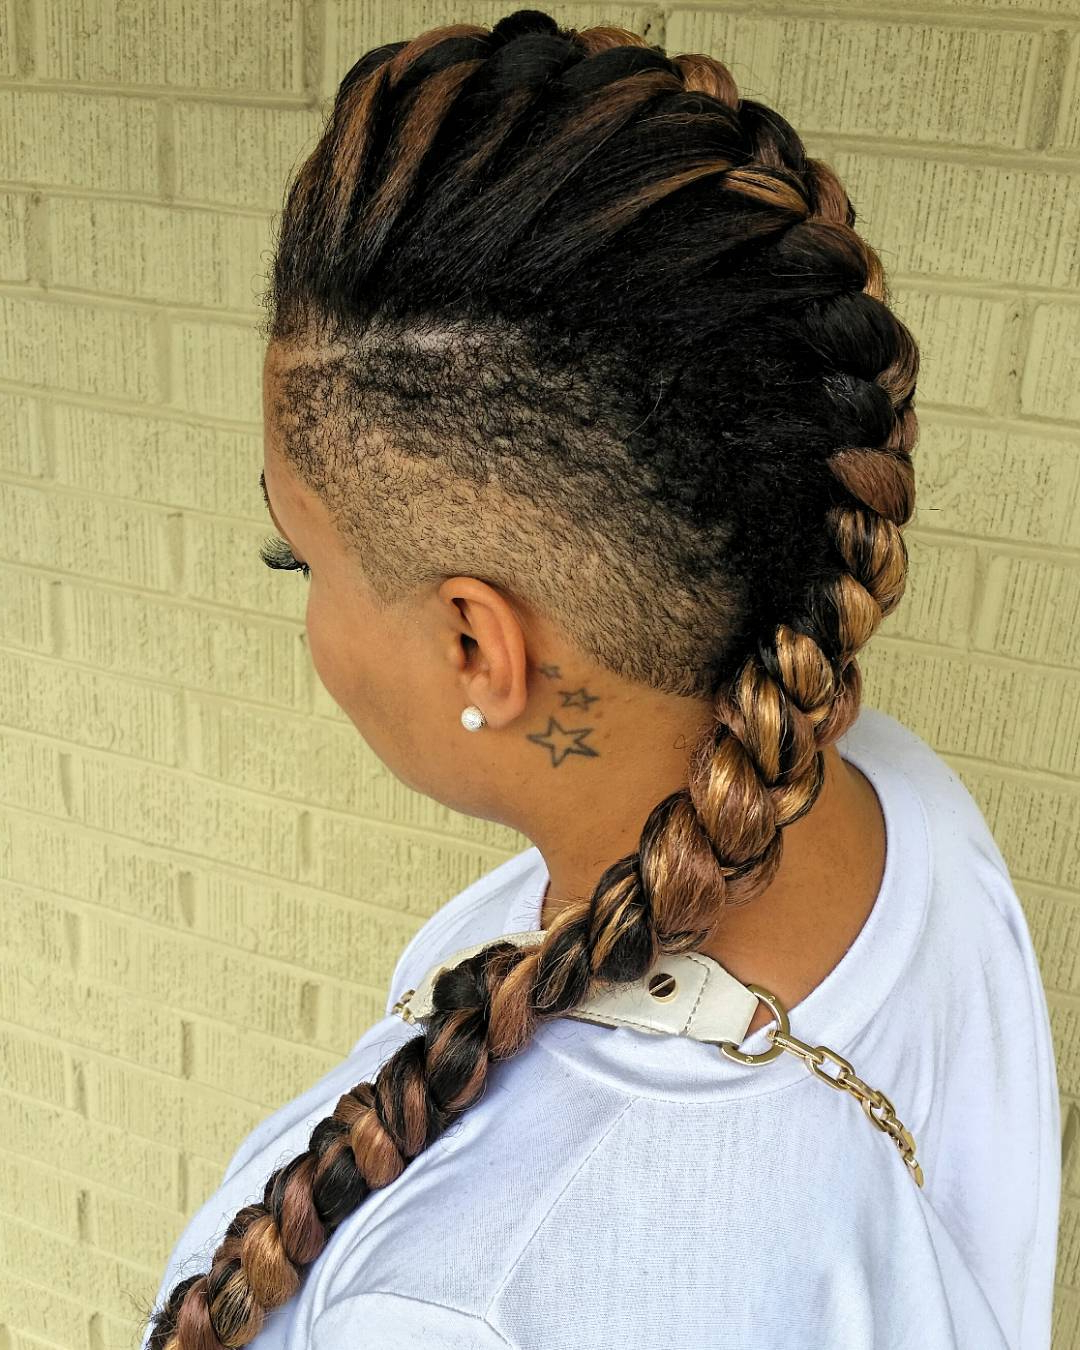 Mohawk Braids: 12 Braided Mohawk Hairstyles That Get Attention Pertaining To 2020 Mohawk Braided Hairstyles With Beads (View 10 of 20)